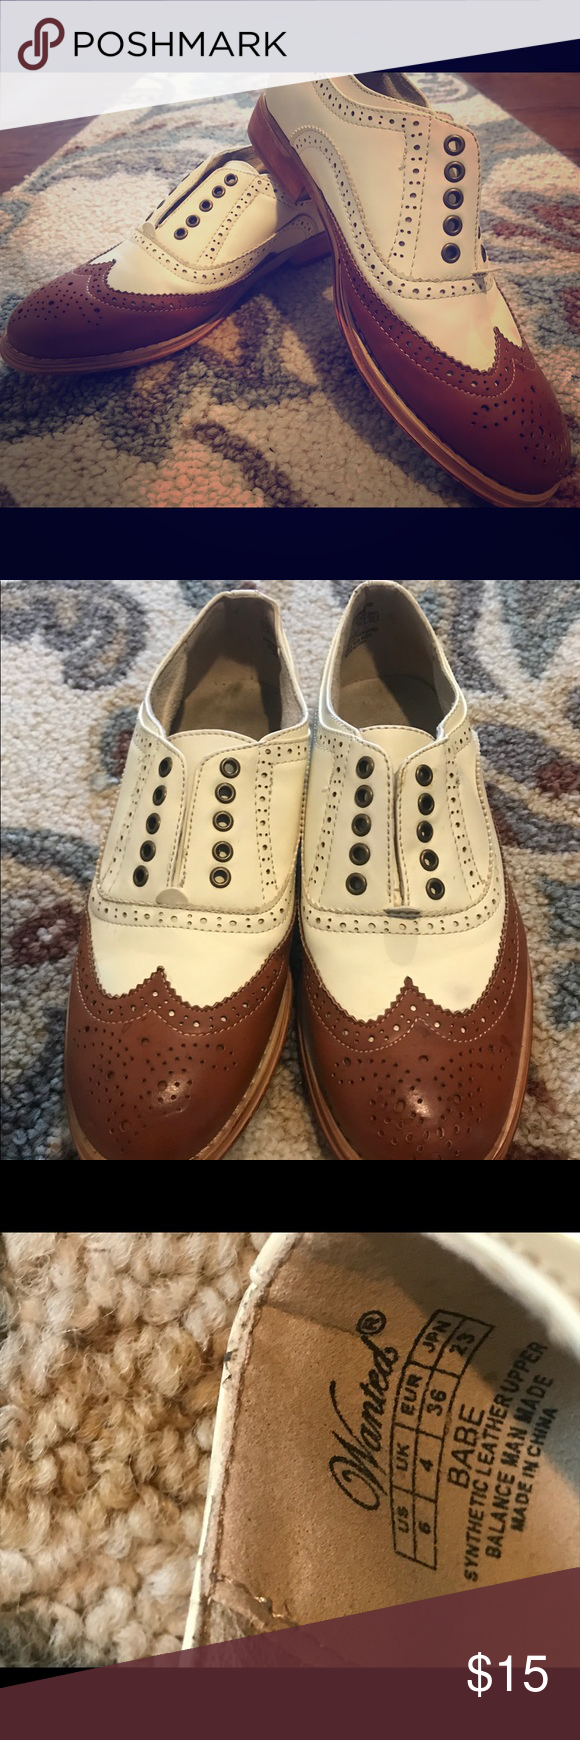 Light tan and beige Oxfords